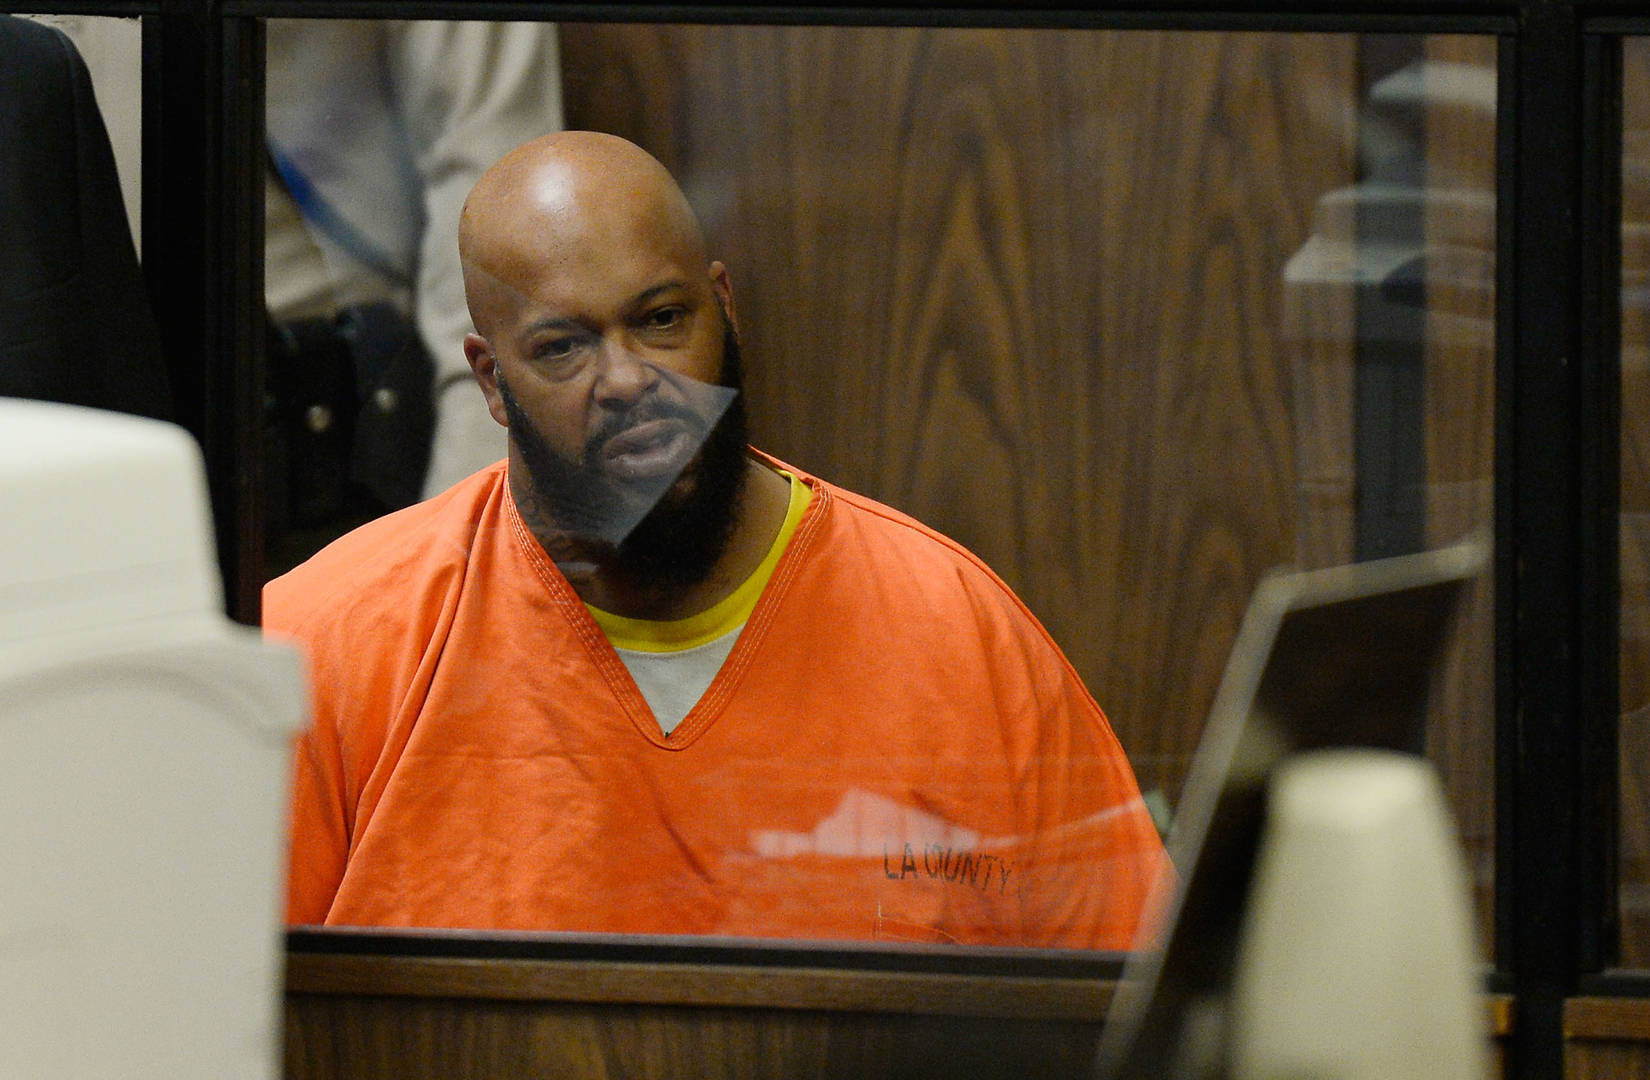 How Suge Knight Became Hip-Hop's Biggest Antagonist